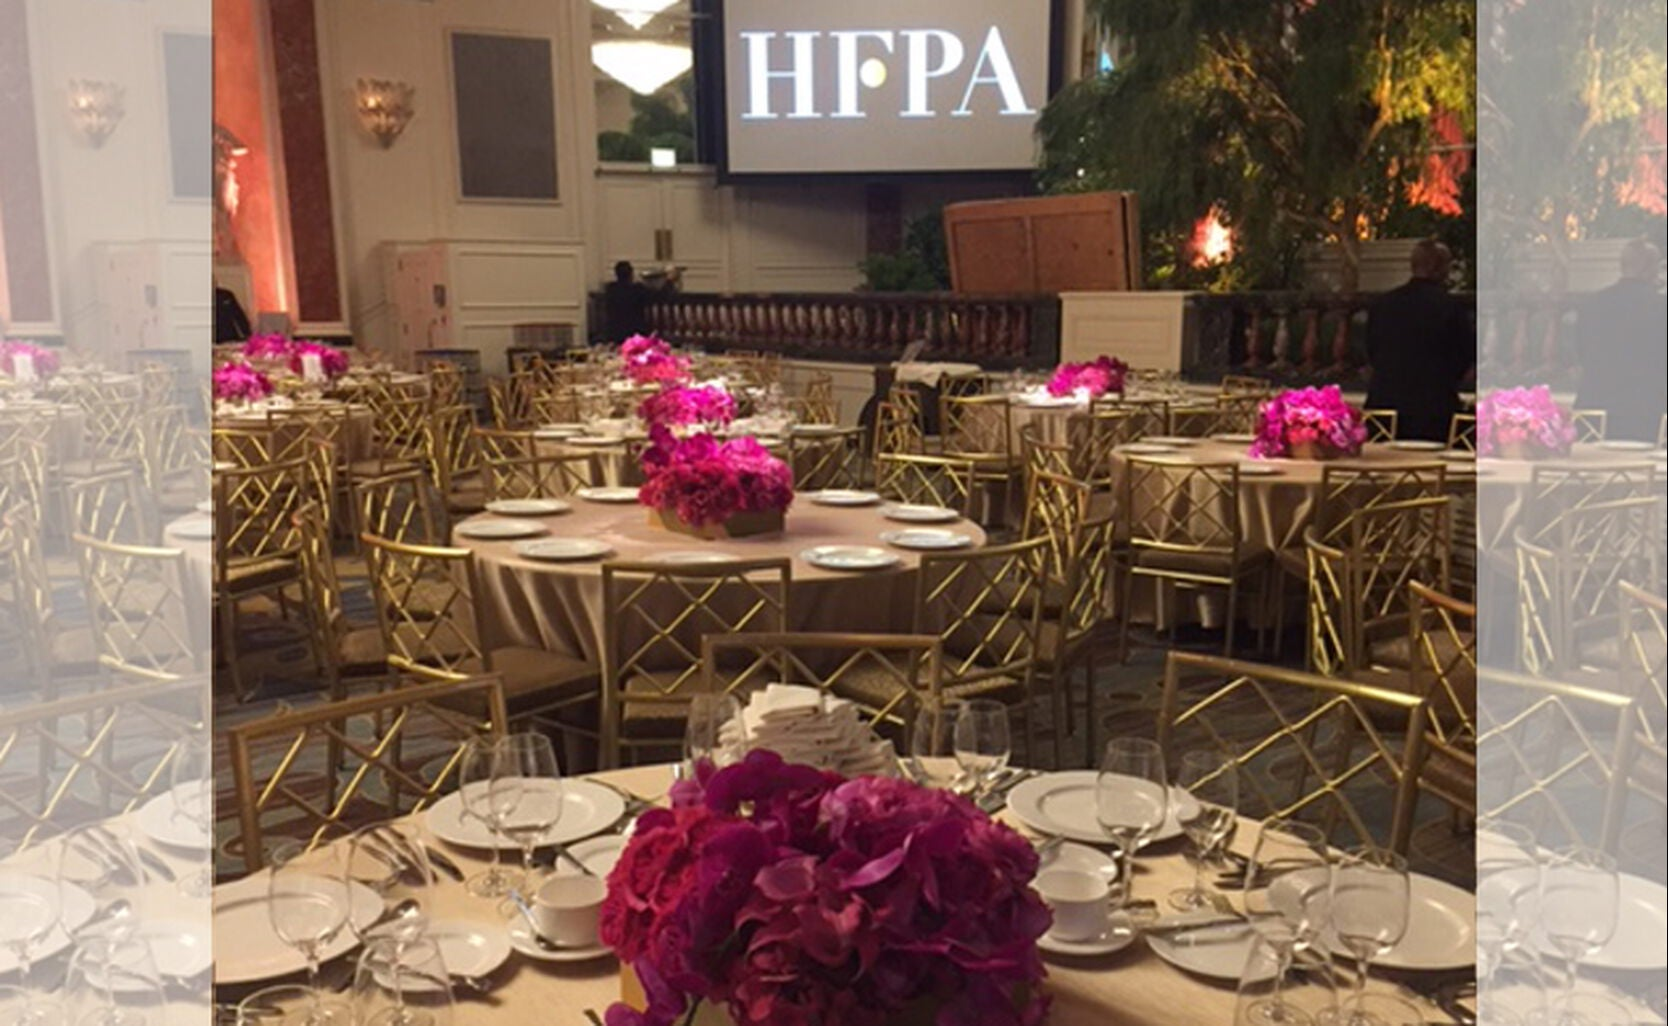 HFPA Grants Banquet 2017